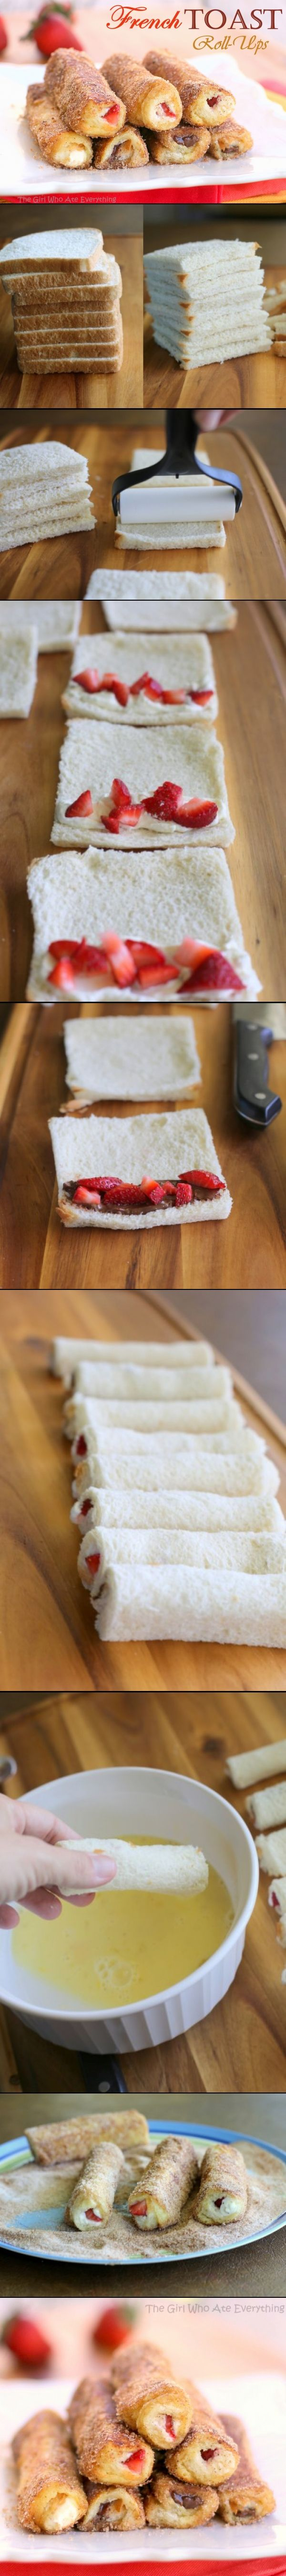 Easy and fun French toast roll ups. Fill them with cream cheese and berries or nutella and bananas. Instructions are in a different language but the photos make it pretty much self explanatory.